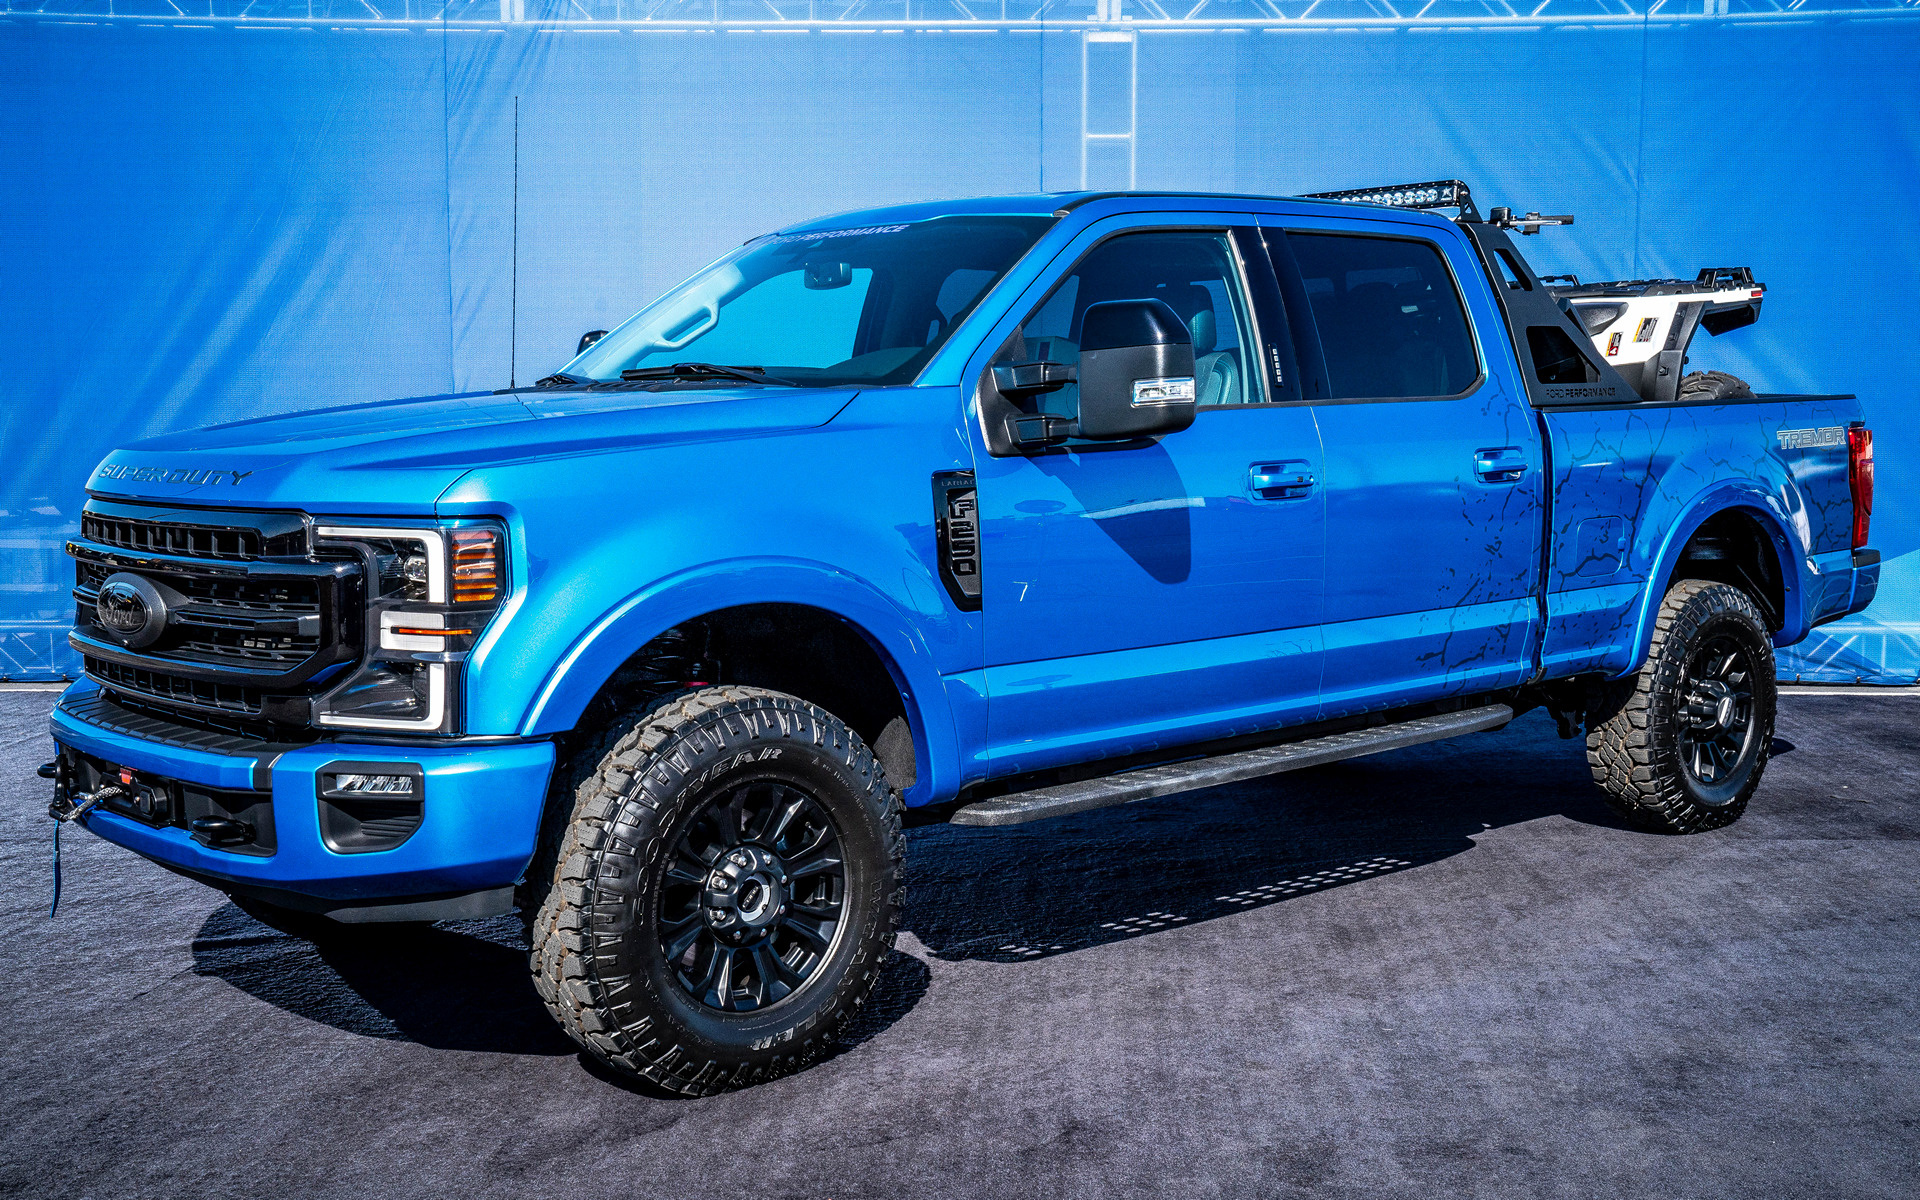 F 150 Tremor >> 2019 Ford F-250 Super Duty Tremor Crew Cab Black Appearance Package - Wallpapers and HD Images ...